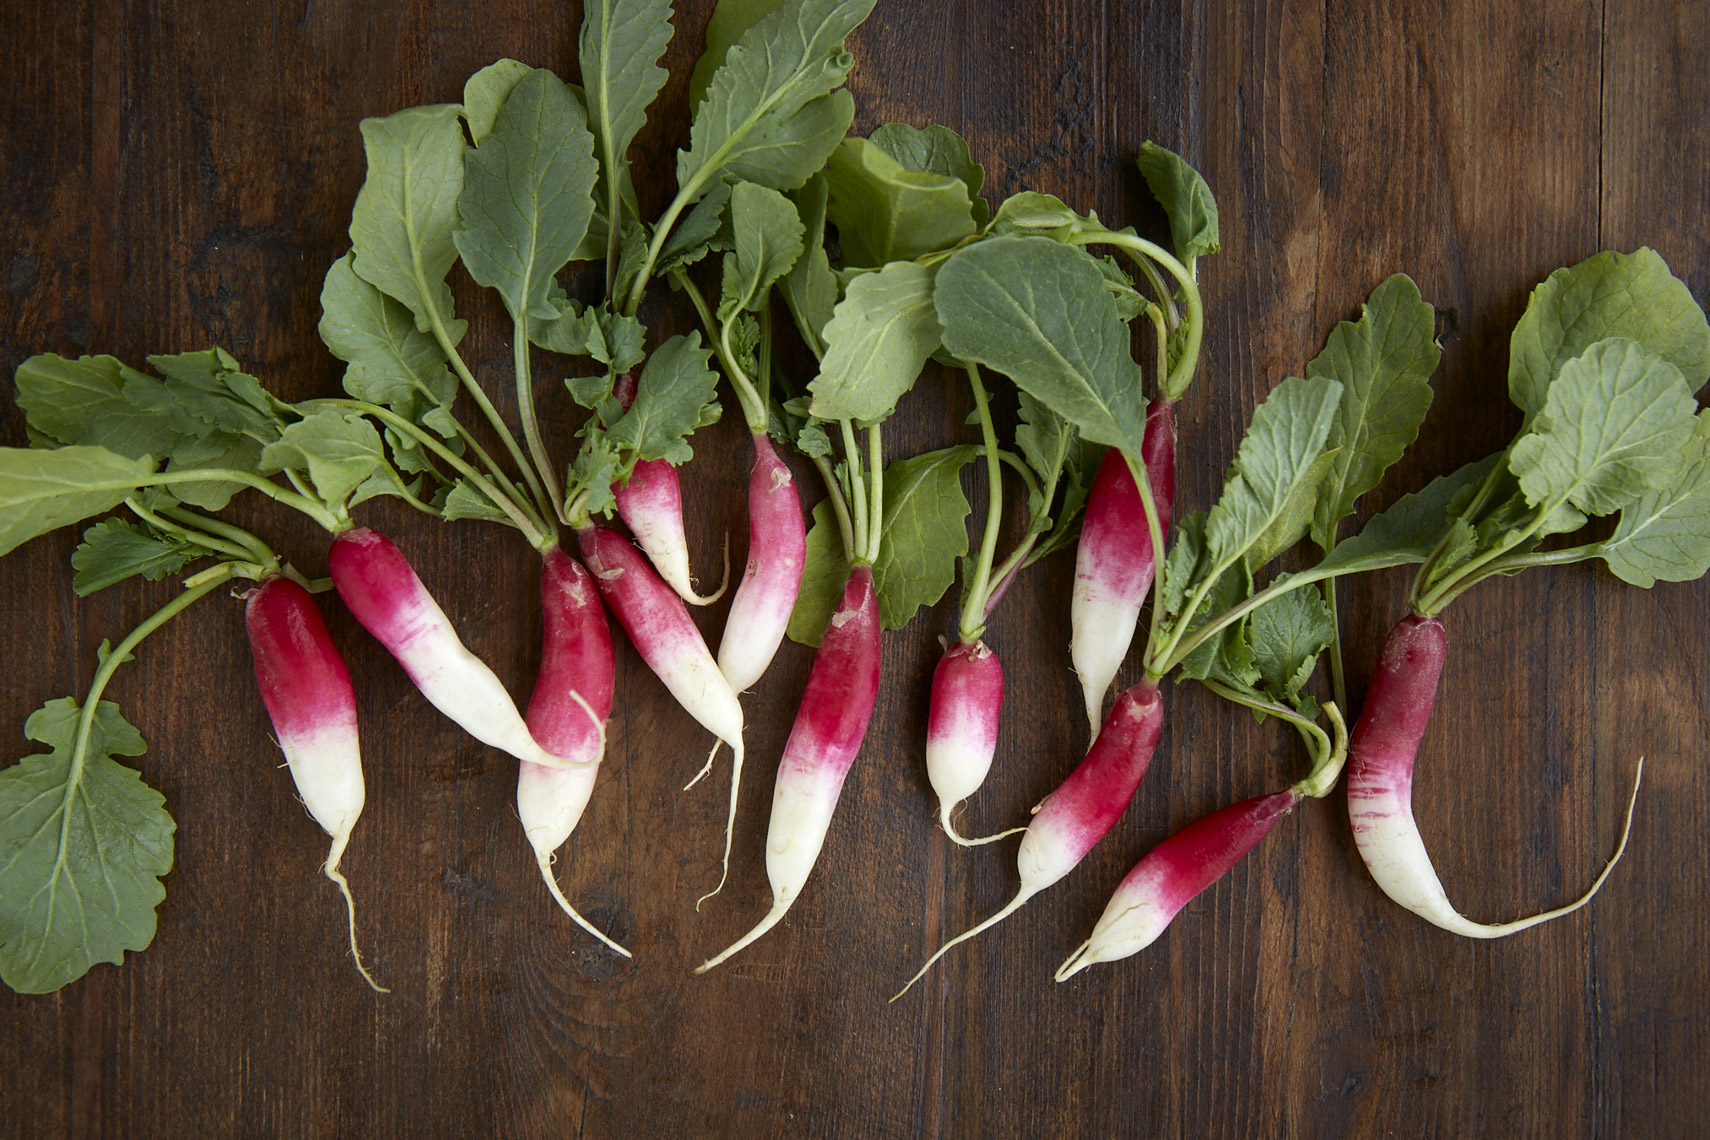 AlanCampbellPhotography, fresh ingredients from the garden Radishes